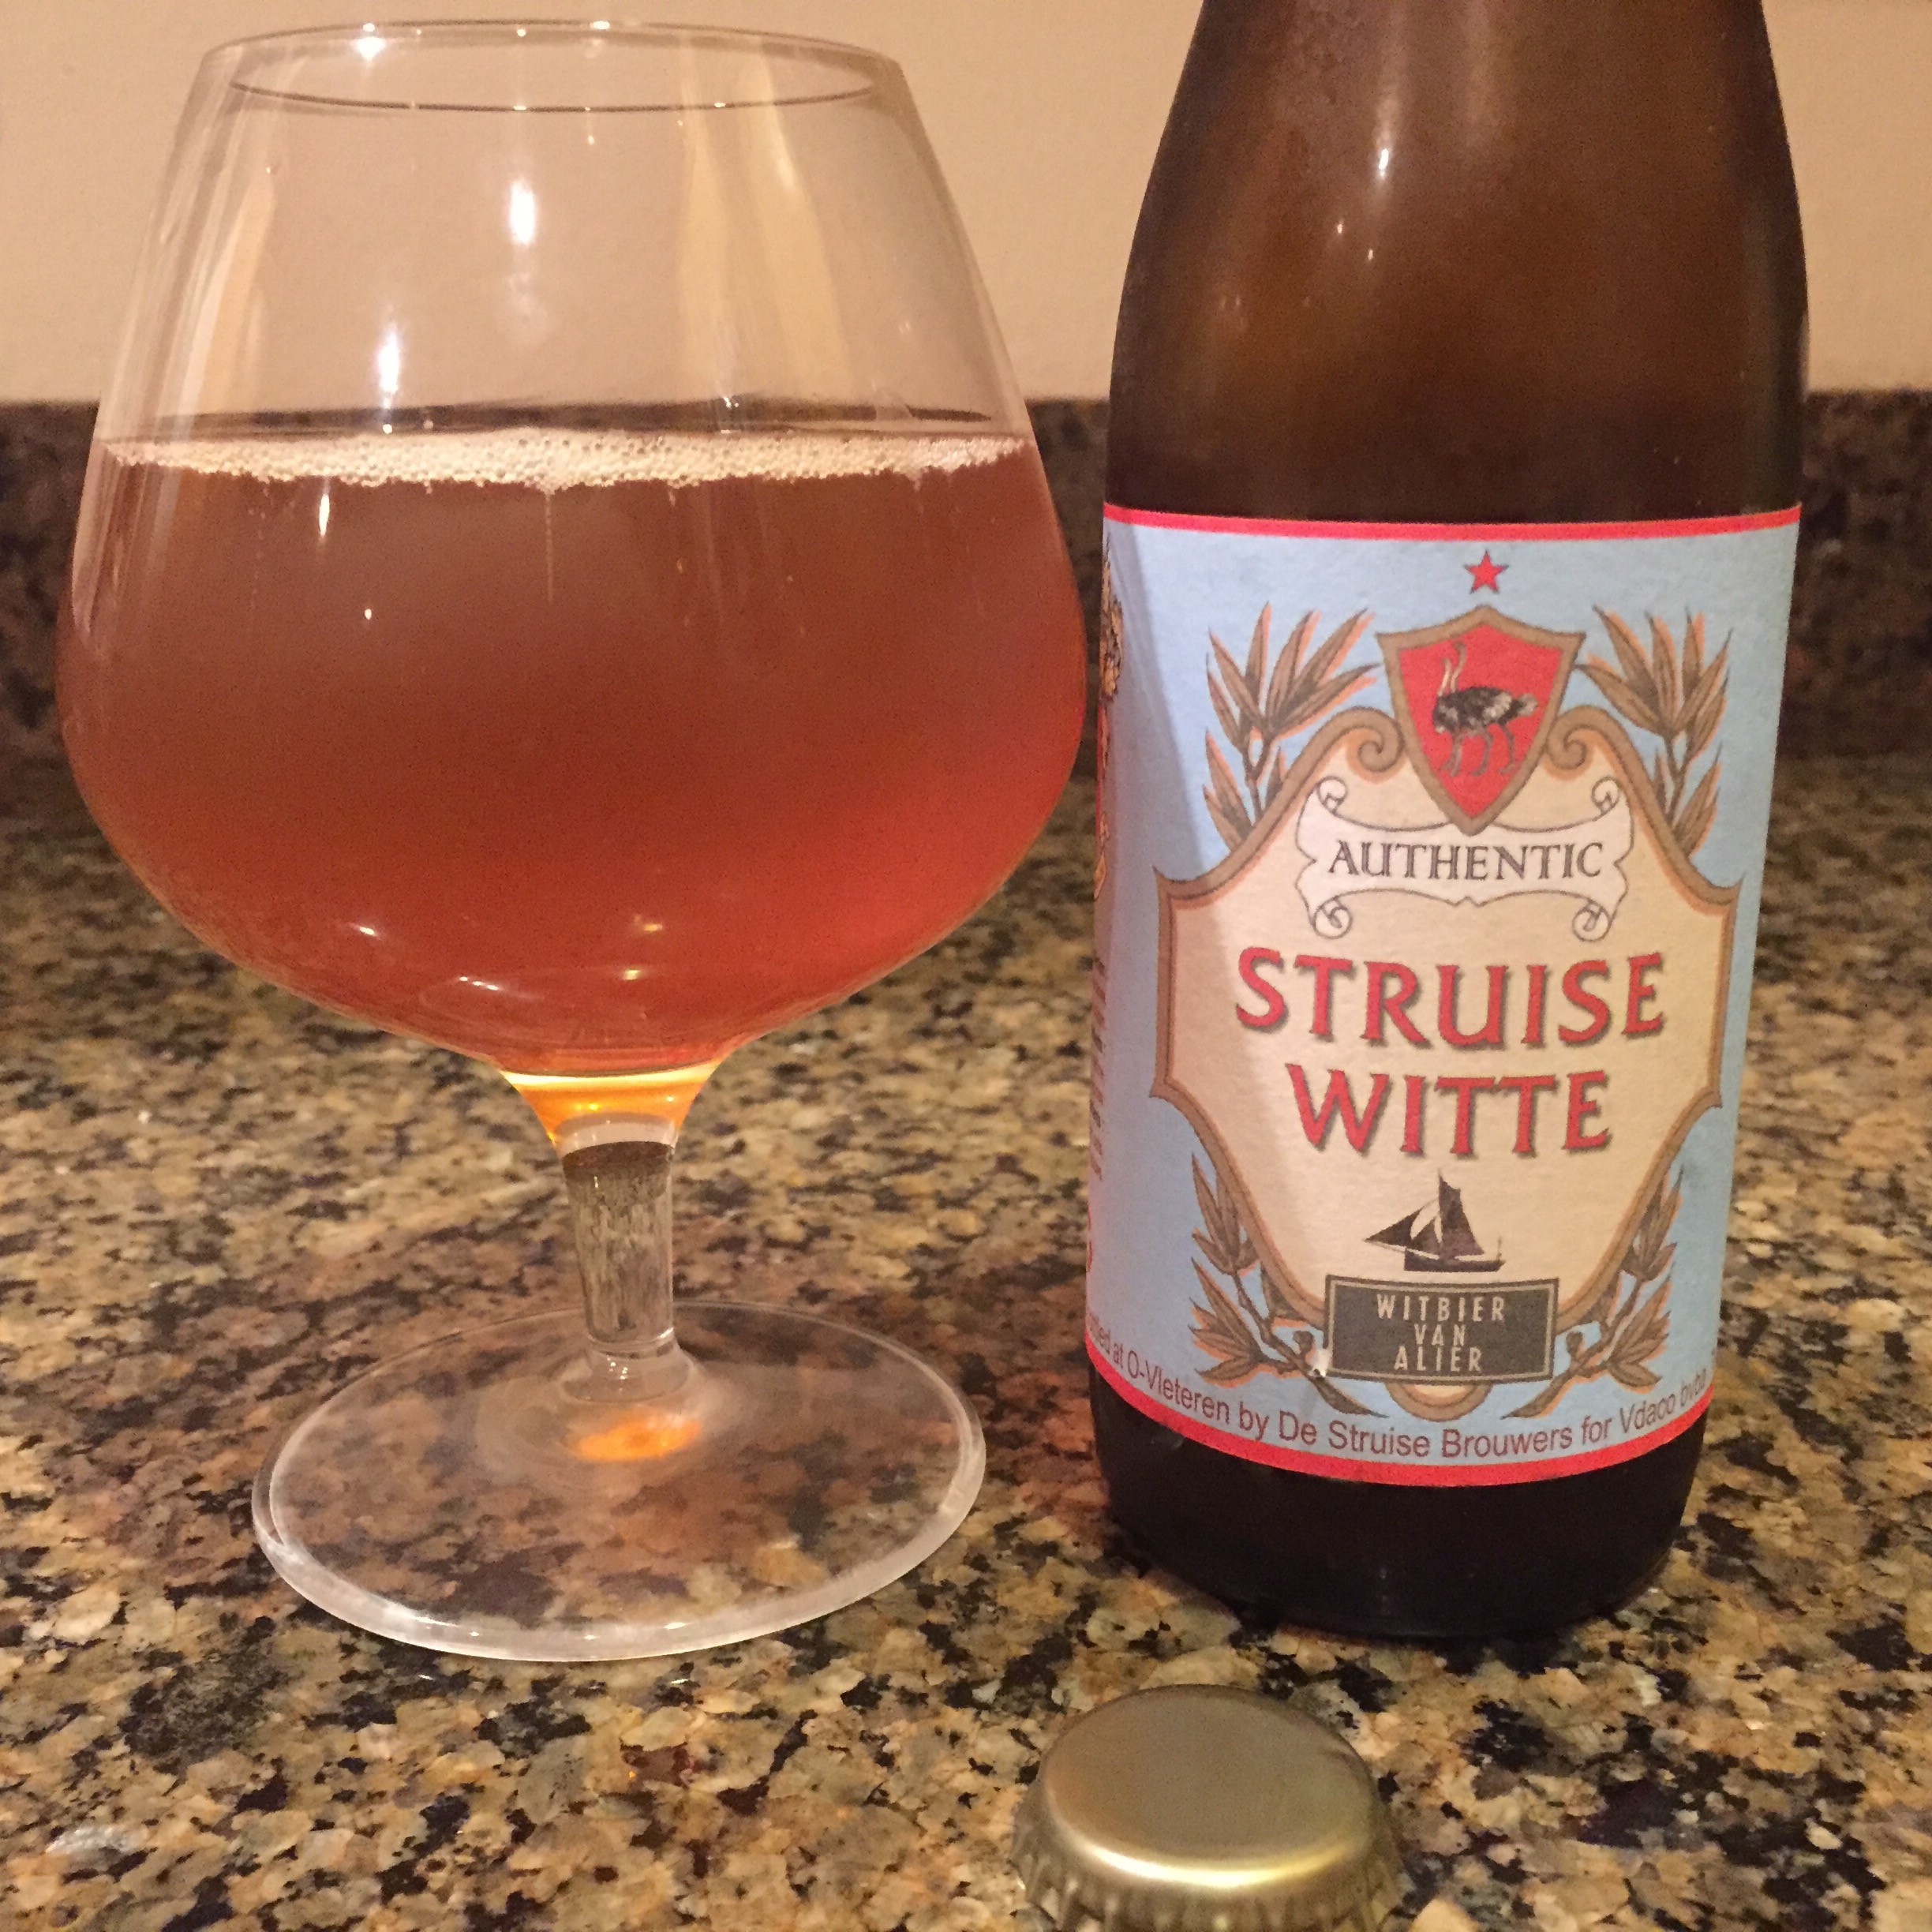 Struise Witte by De Struise Brouwers